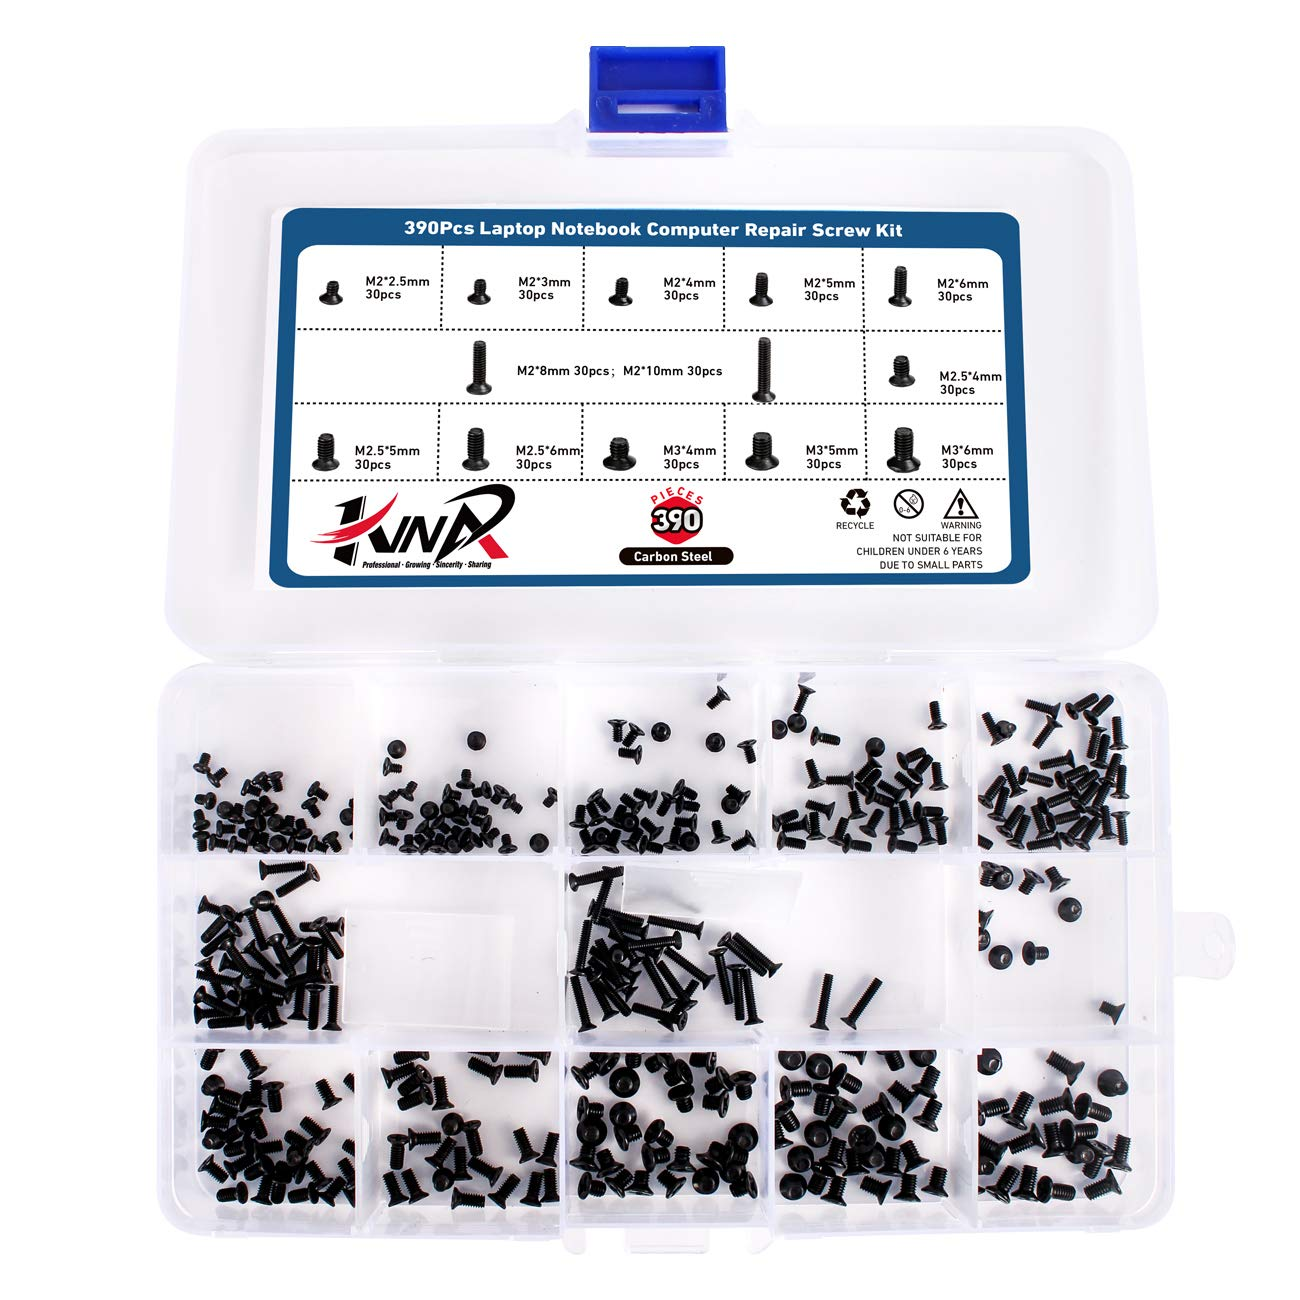 390Pcs Laptop Notebook Computer Repair Screw Kit,Flat Cross Head Replacement Repair Screw Set for Lenovo,Dell,Toshiba,HP,Gateway,ECT